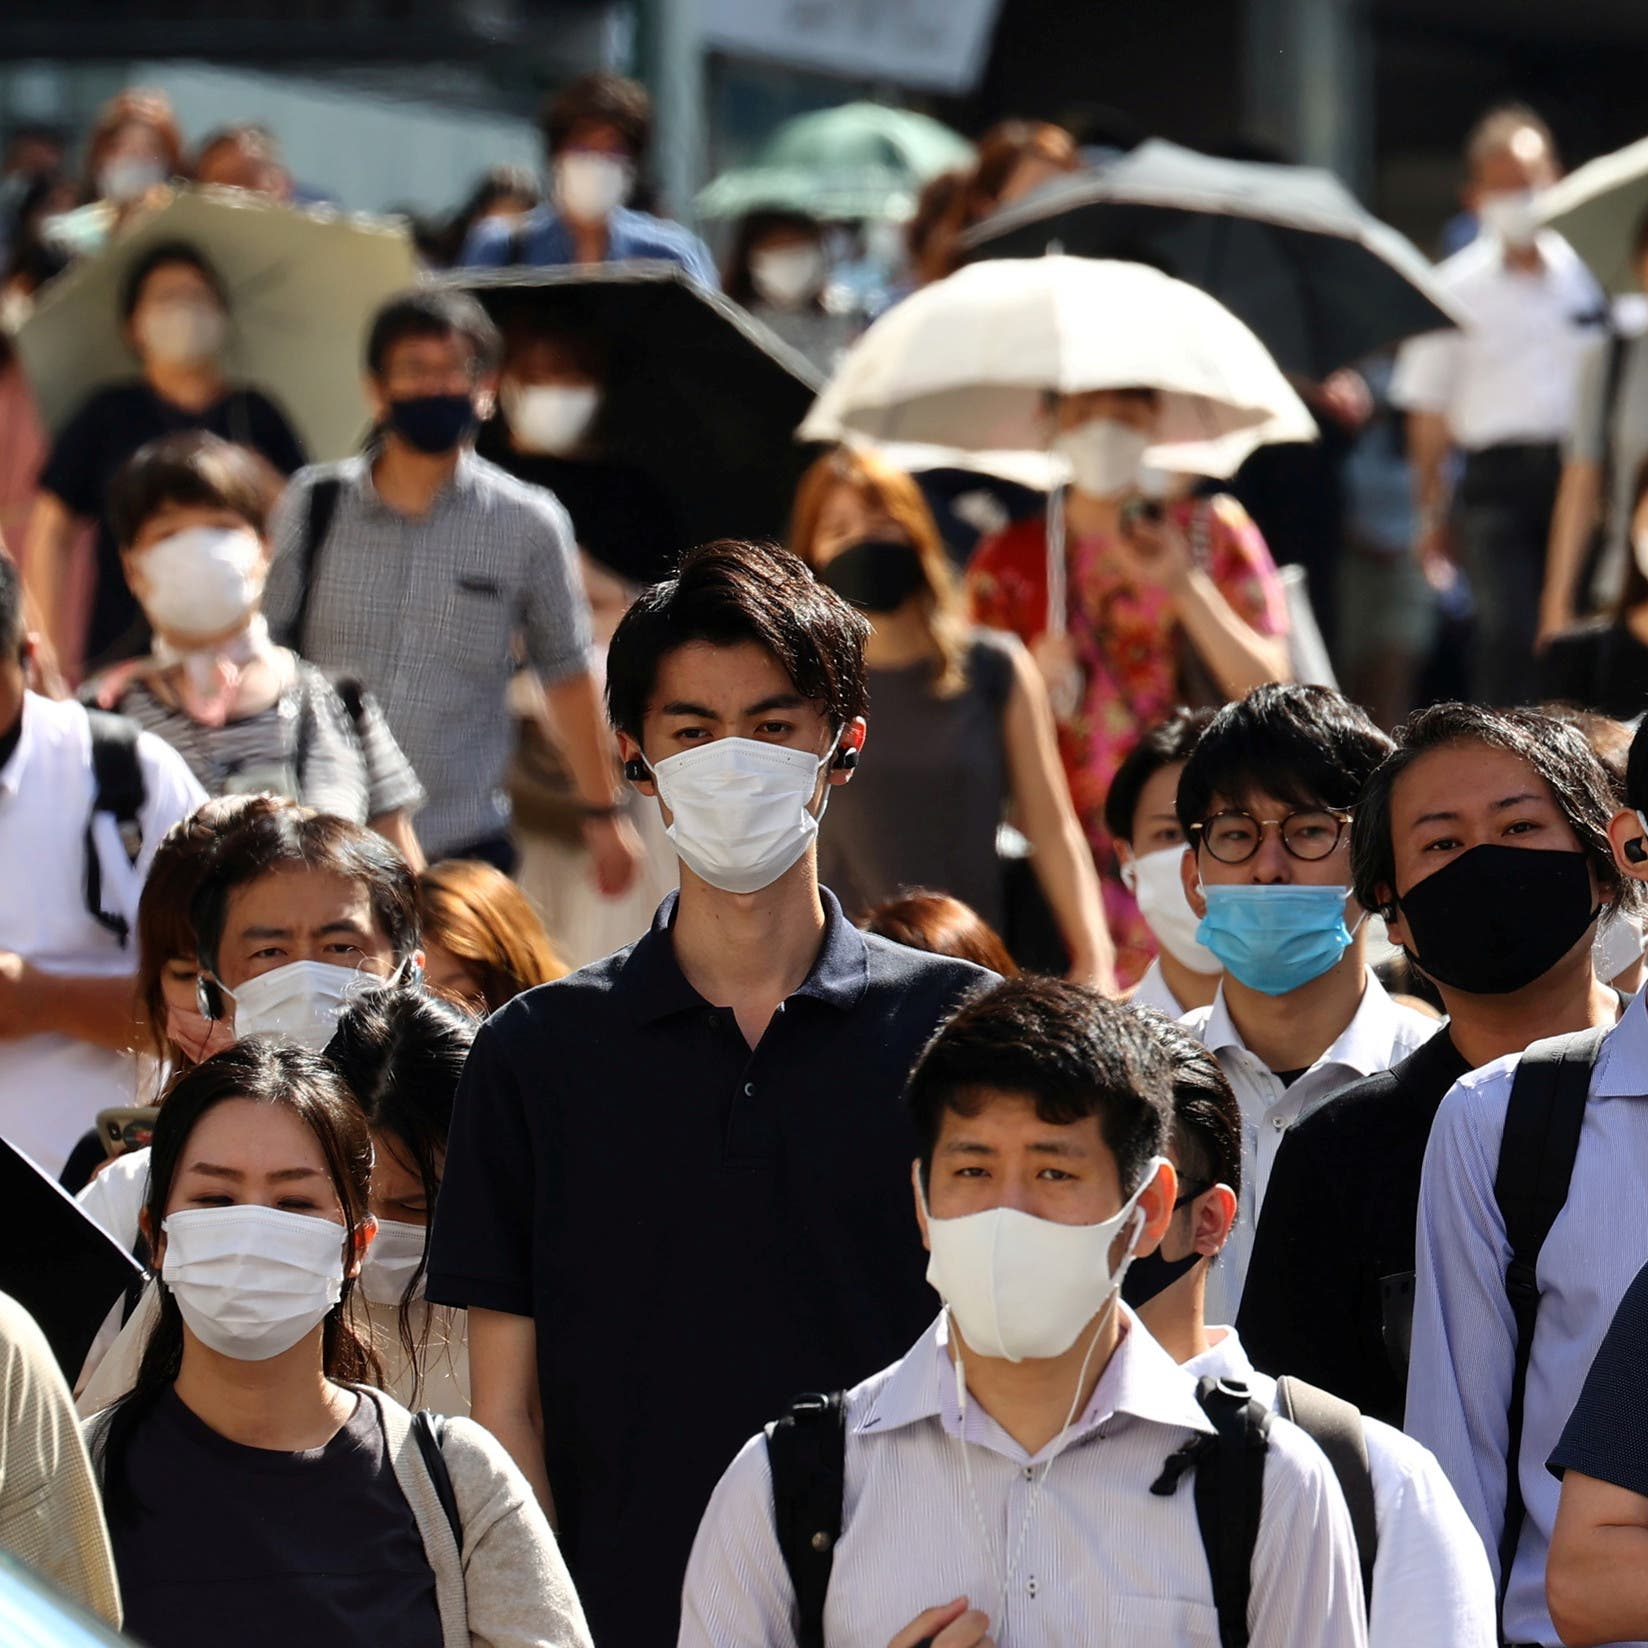 Expert says one popular mask type doesn't protect against COVID-19